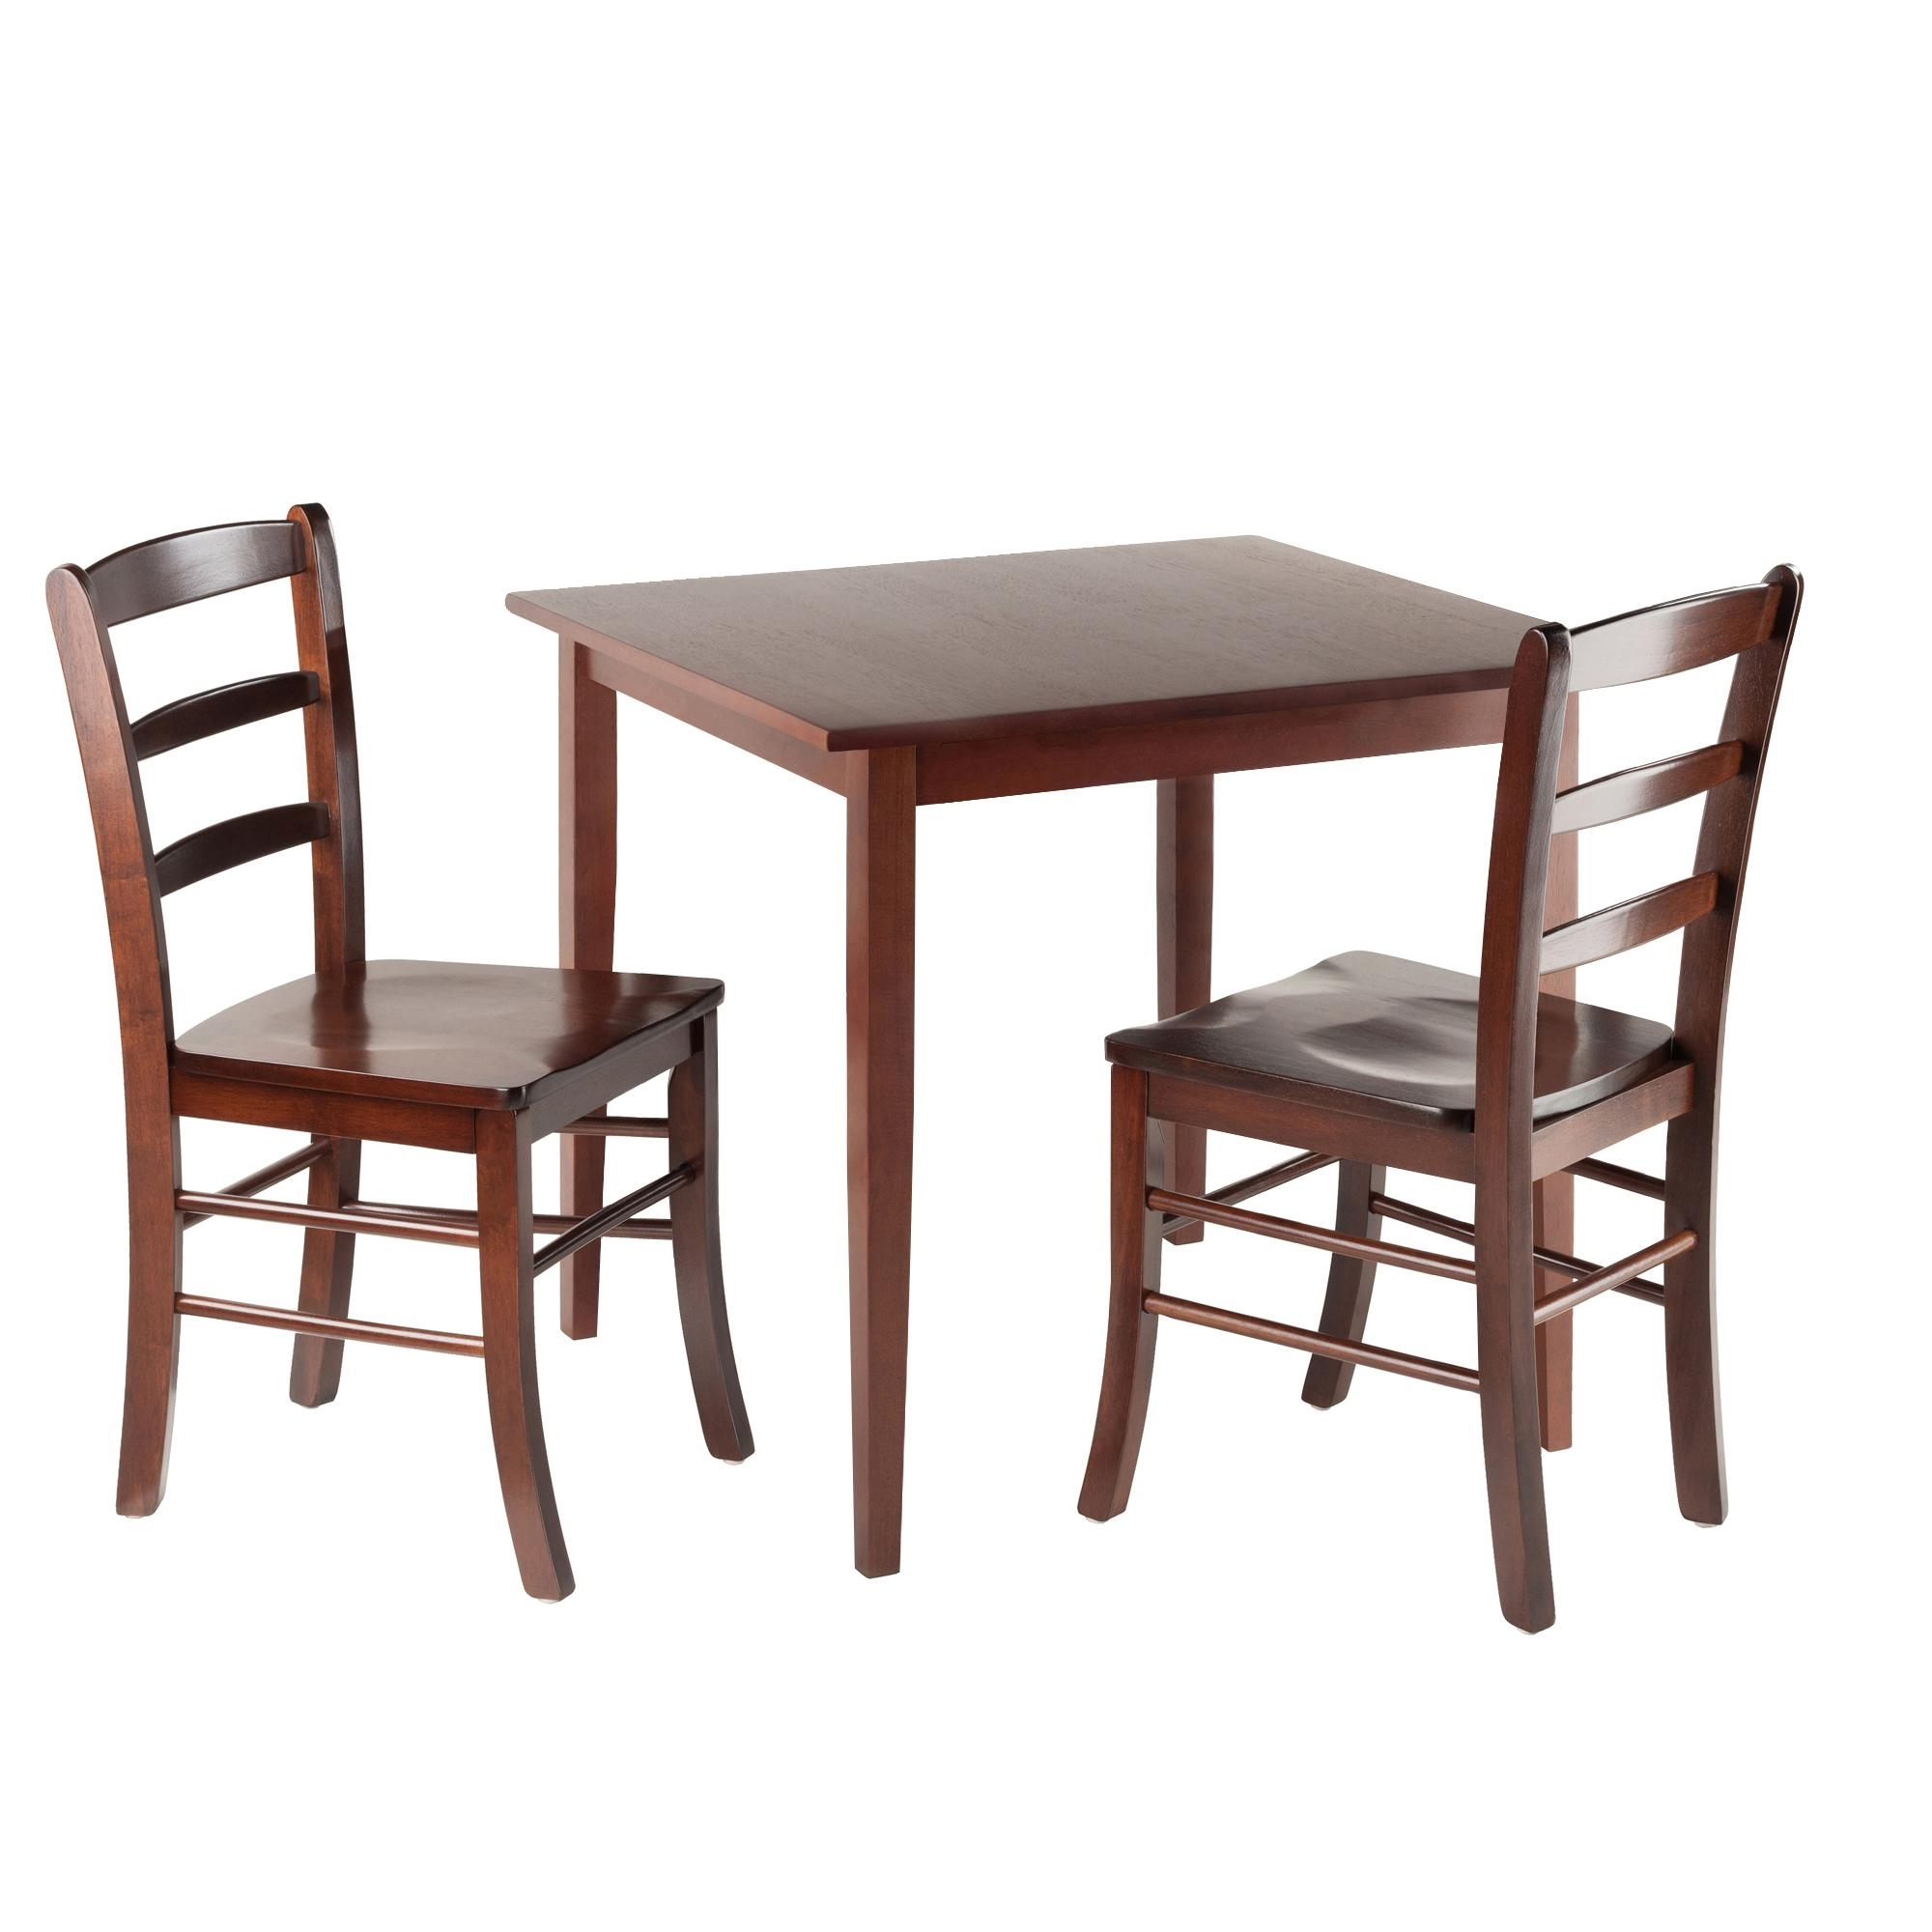 Small Dining Sets Throughout Trendy Amazon – Winsome Groveland Square Dining Table With 2 Chairs, (View 16 of 25)